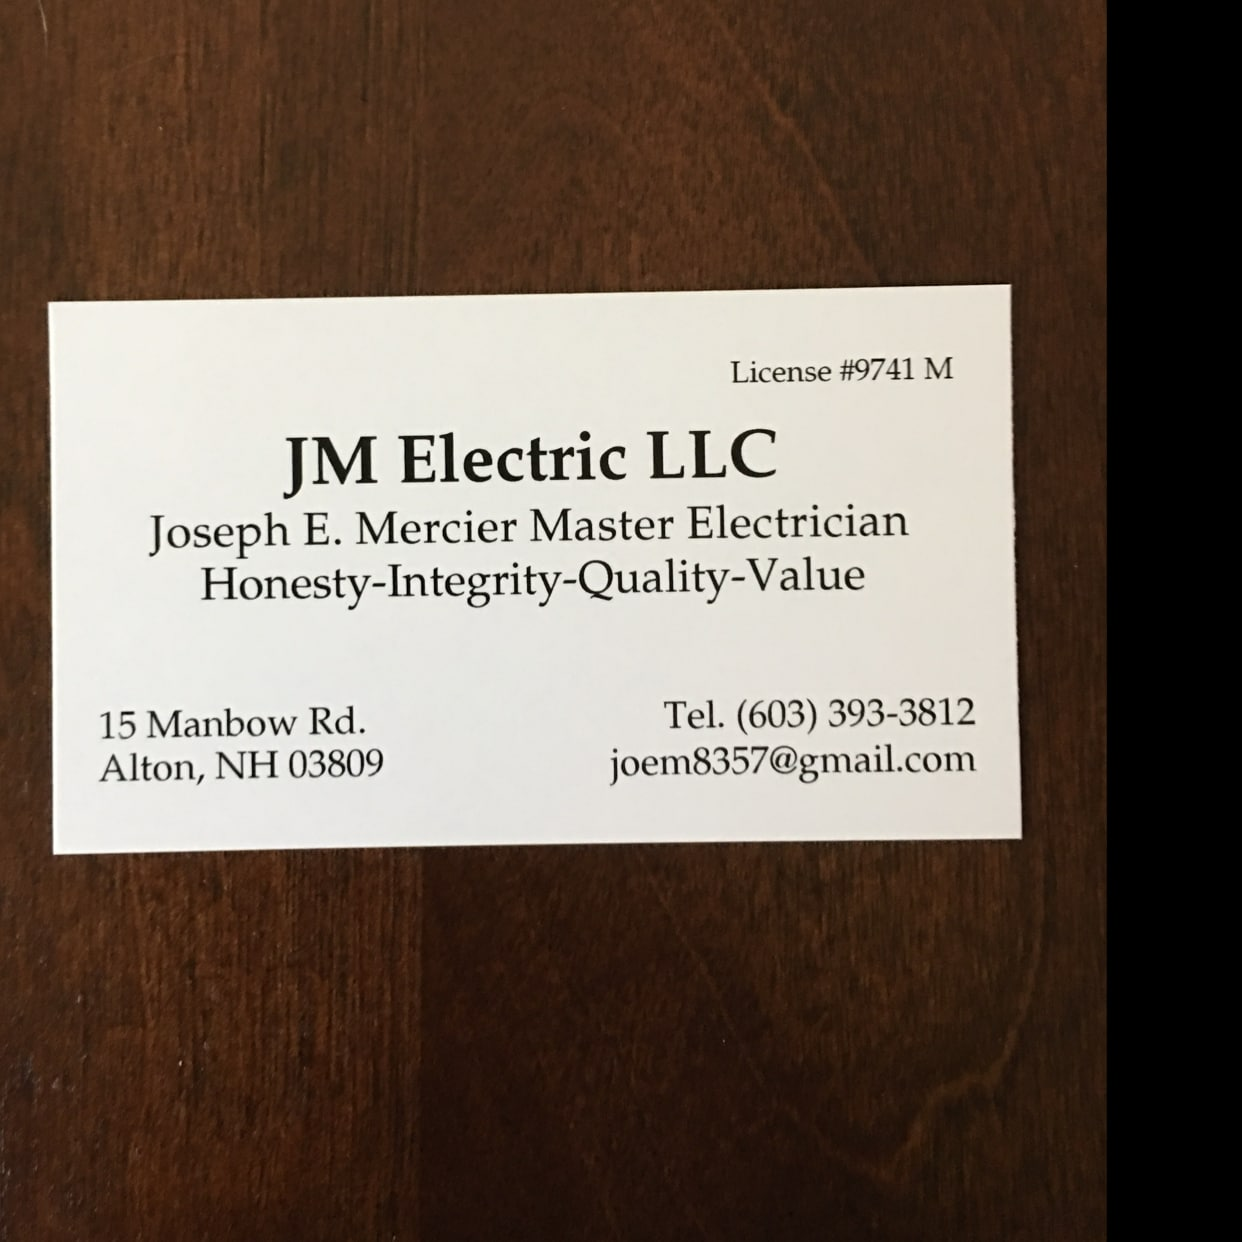 JM Electric LLC